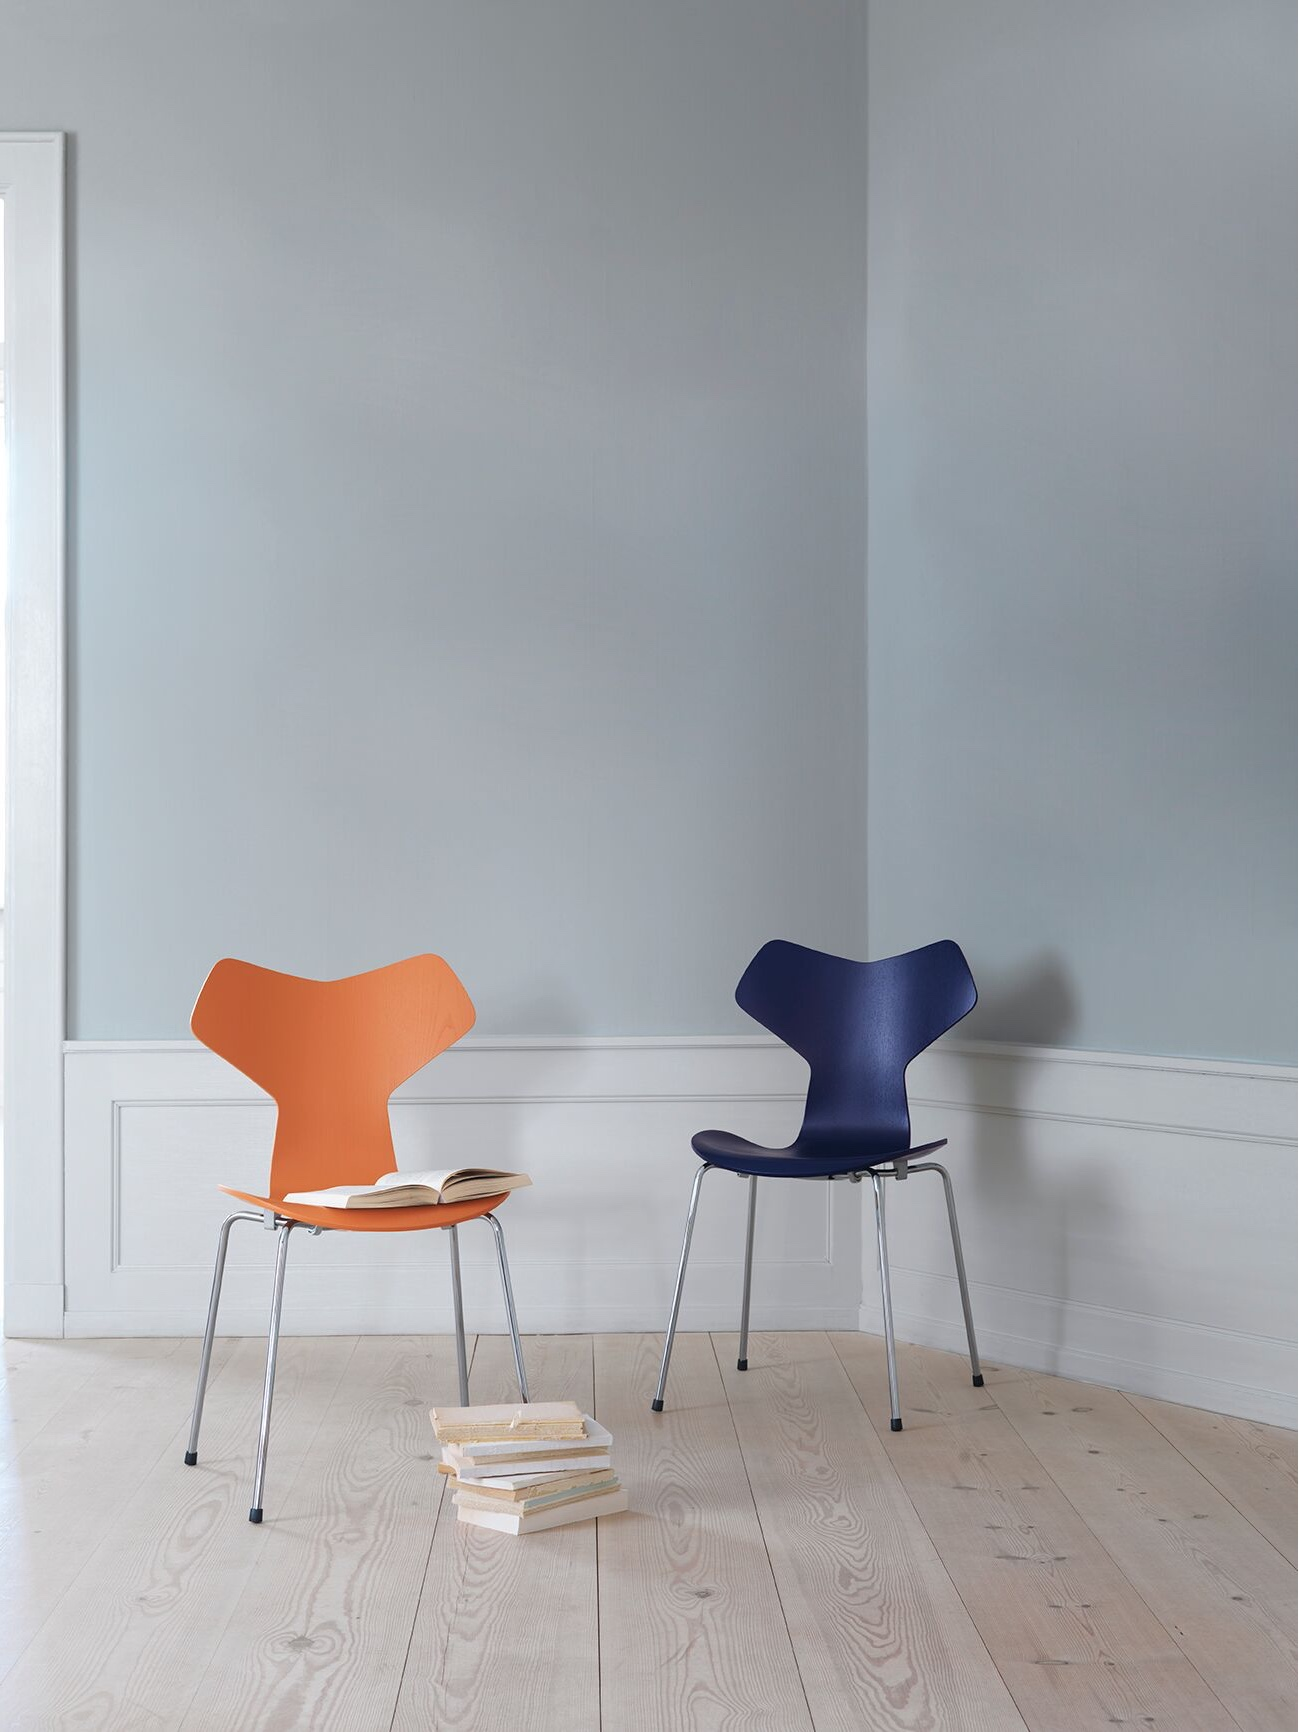 Grand Prix™ in Chevalier Orange and Ai Blue. Colours by Danish artist Tal R.